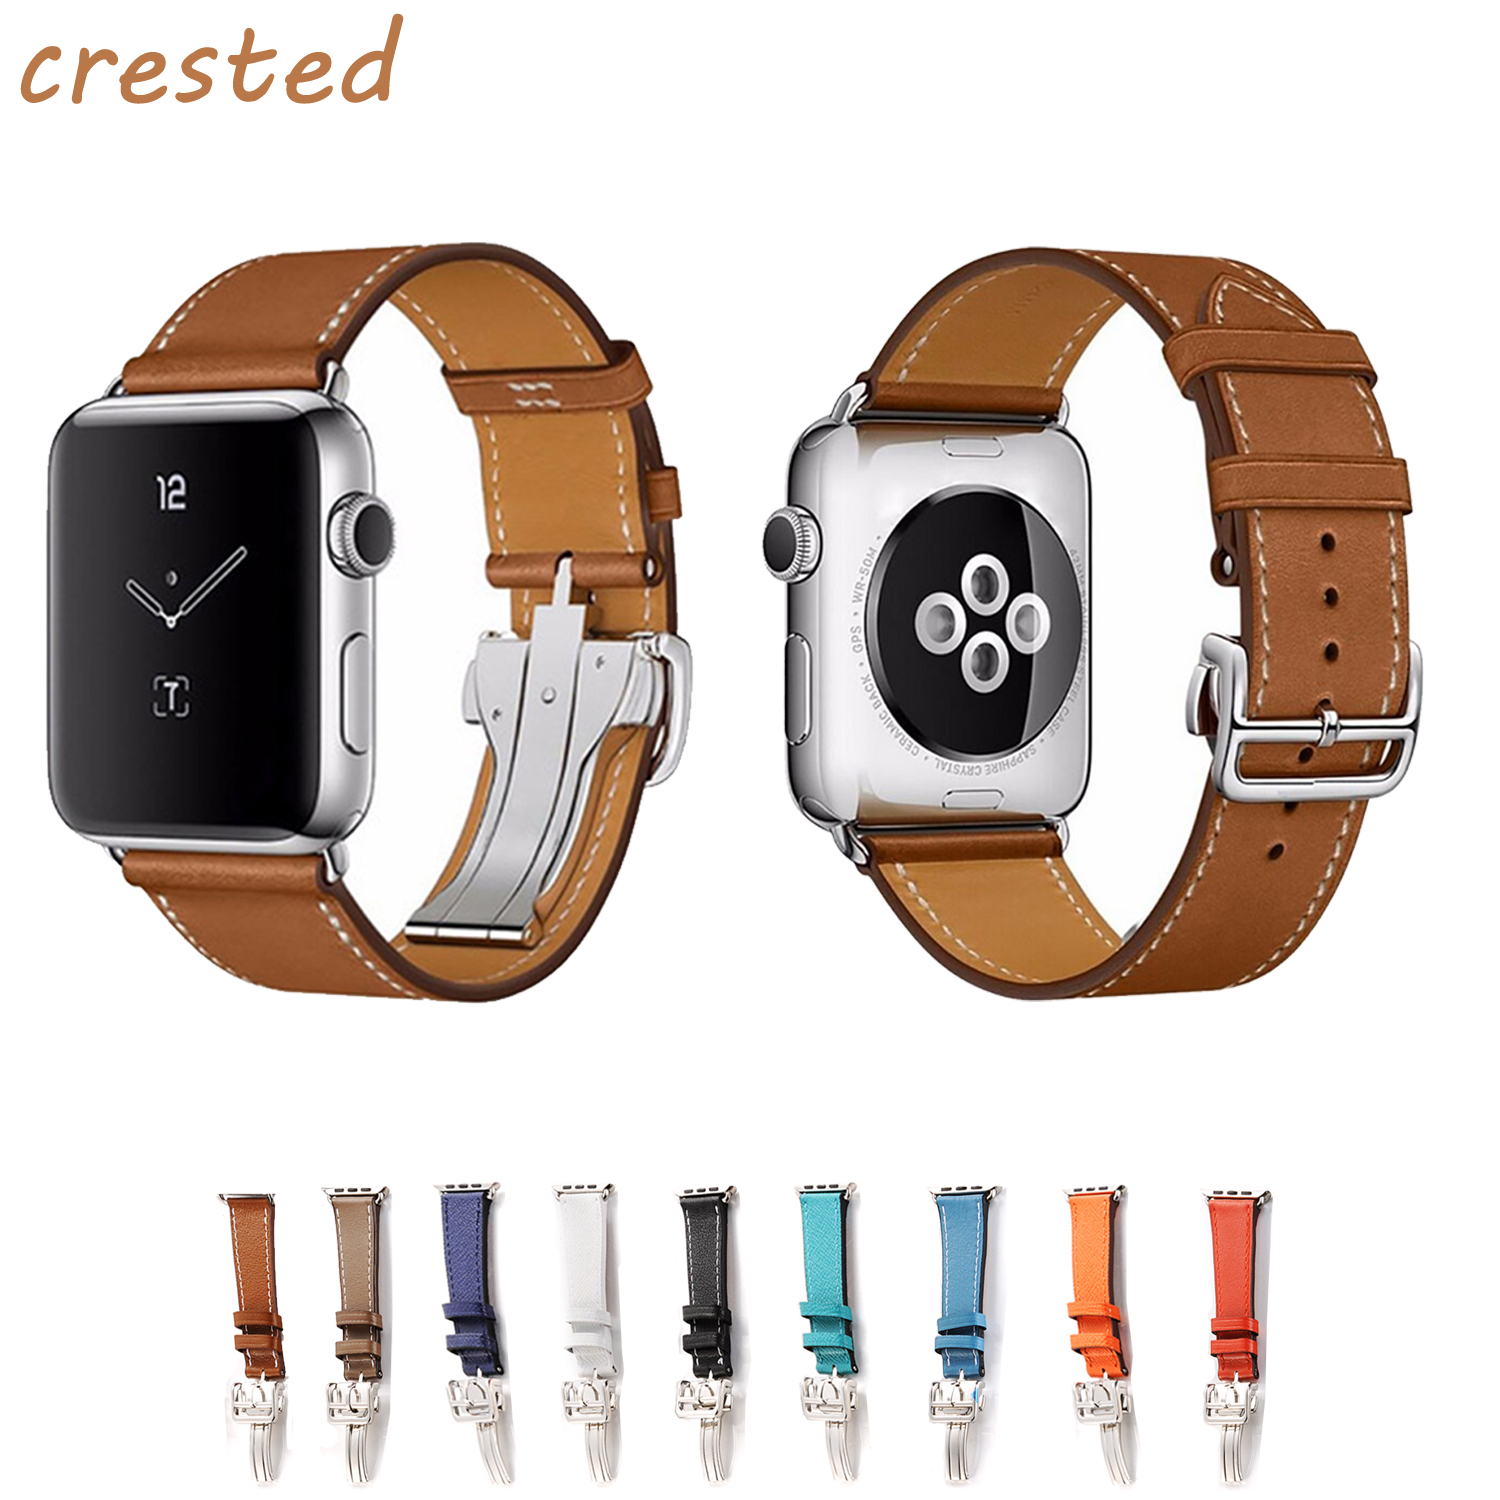 купить CRESTED leather strap for apple watch band 42mm/38mm iwatch 3/2/1 wrist band bracelet metal buckle band belt  Replaceable strap по цене 1054.97 рублей